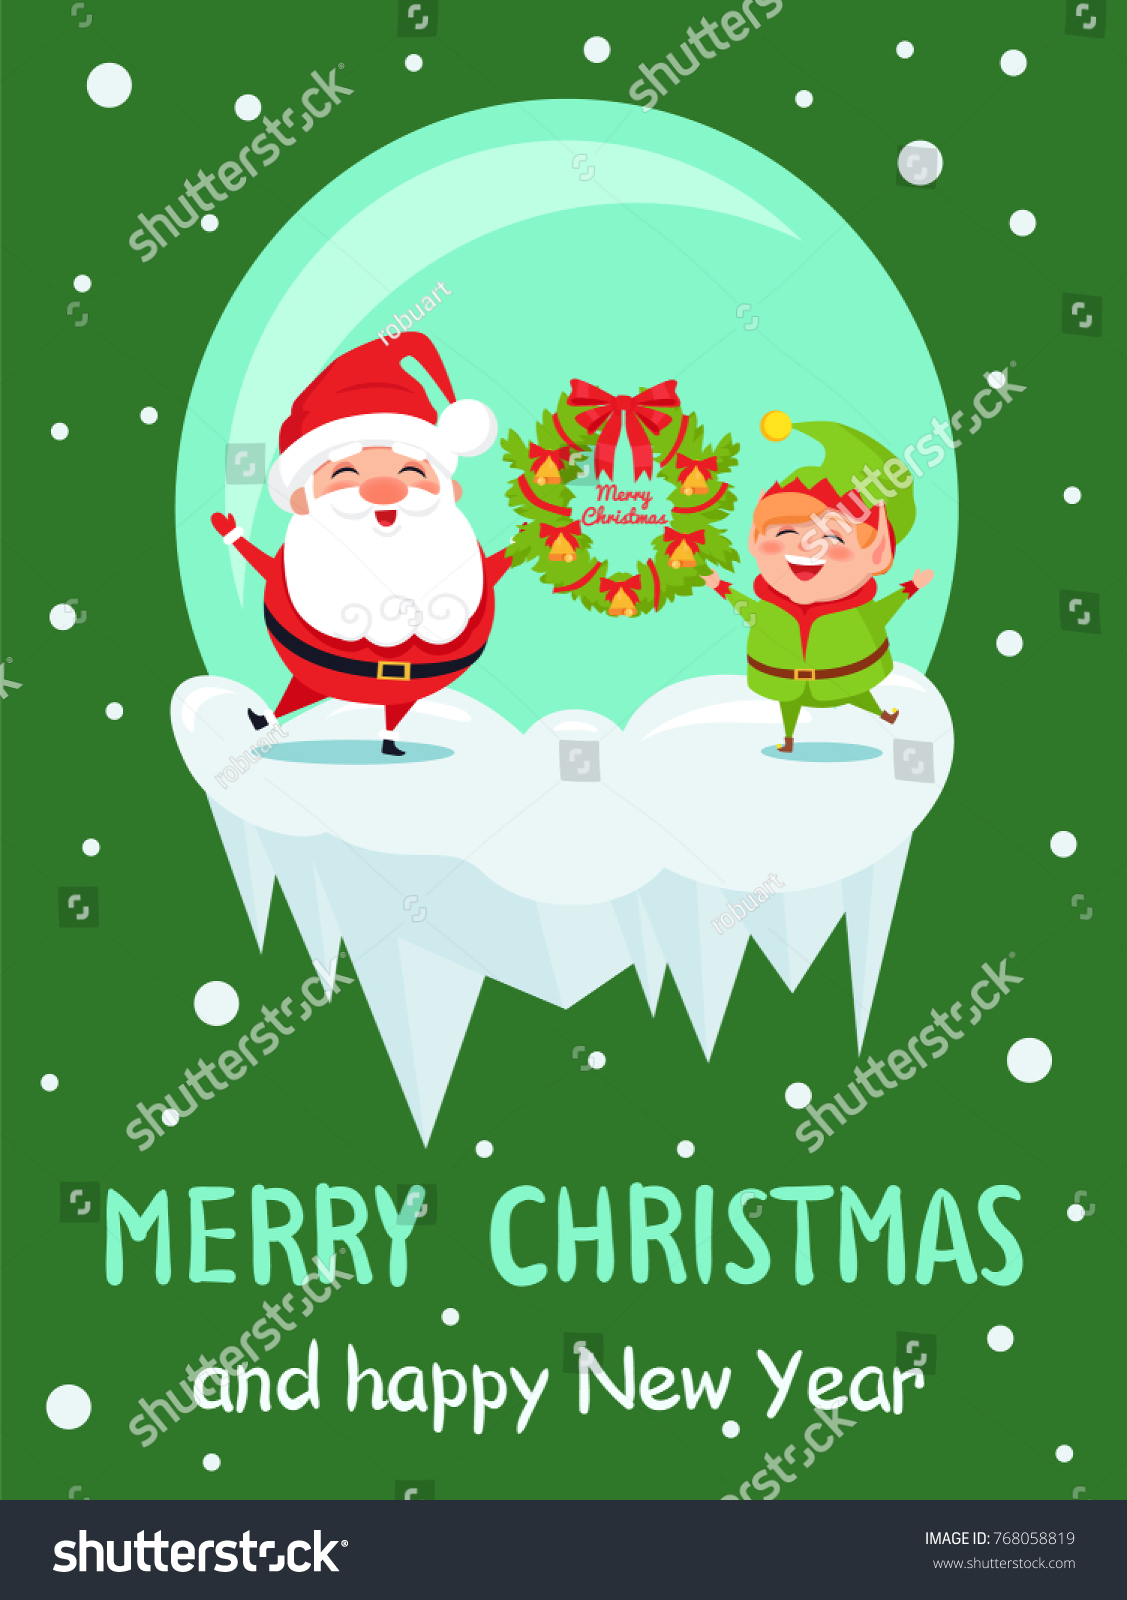 Merry Christmas Happy New Year Poster Stock Vector 768058819